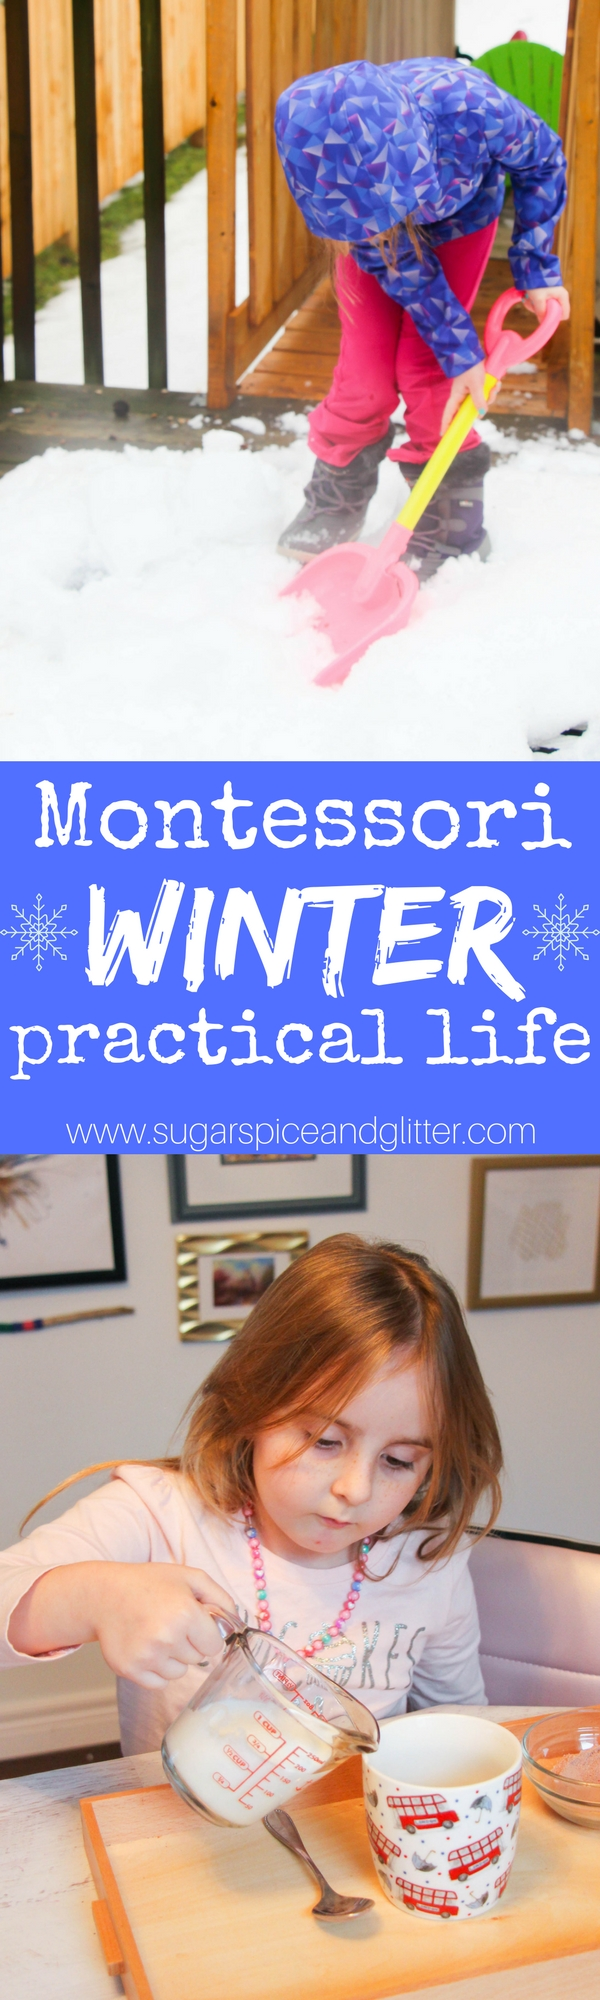 Montessori Winter Practical Life activities that require little to no preparation. From heavy work snow shovelling (and it's benefits) to a hot chocolate tray and formal lesson, these activities will keep kids happy and learning in the winter!